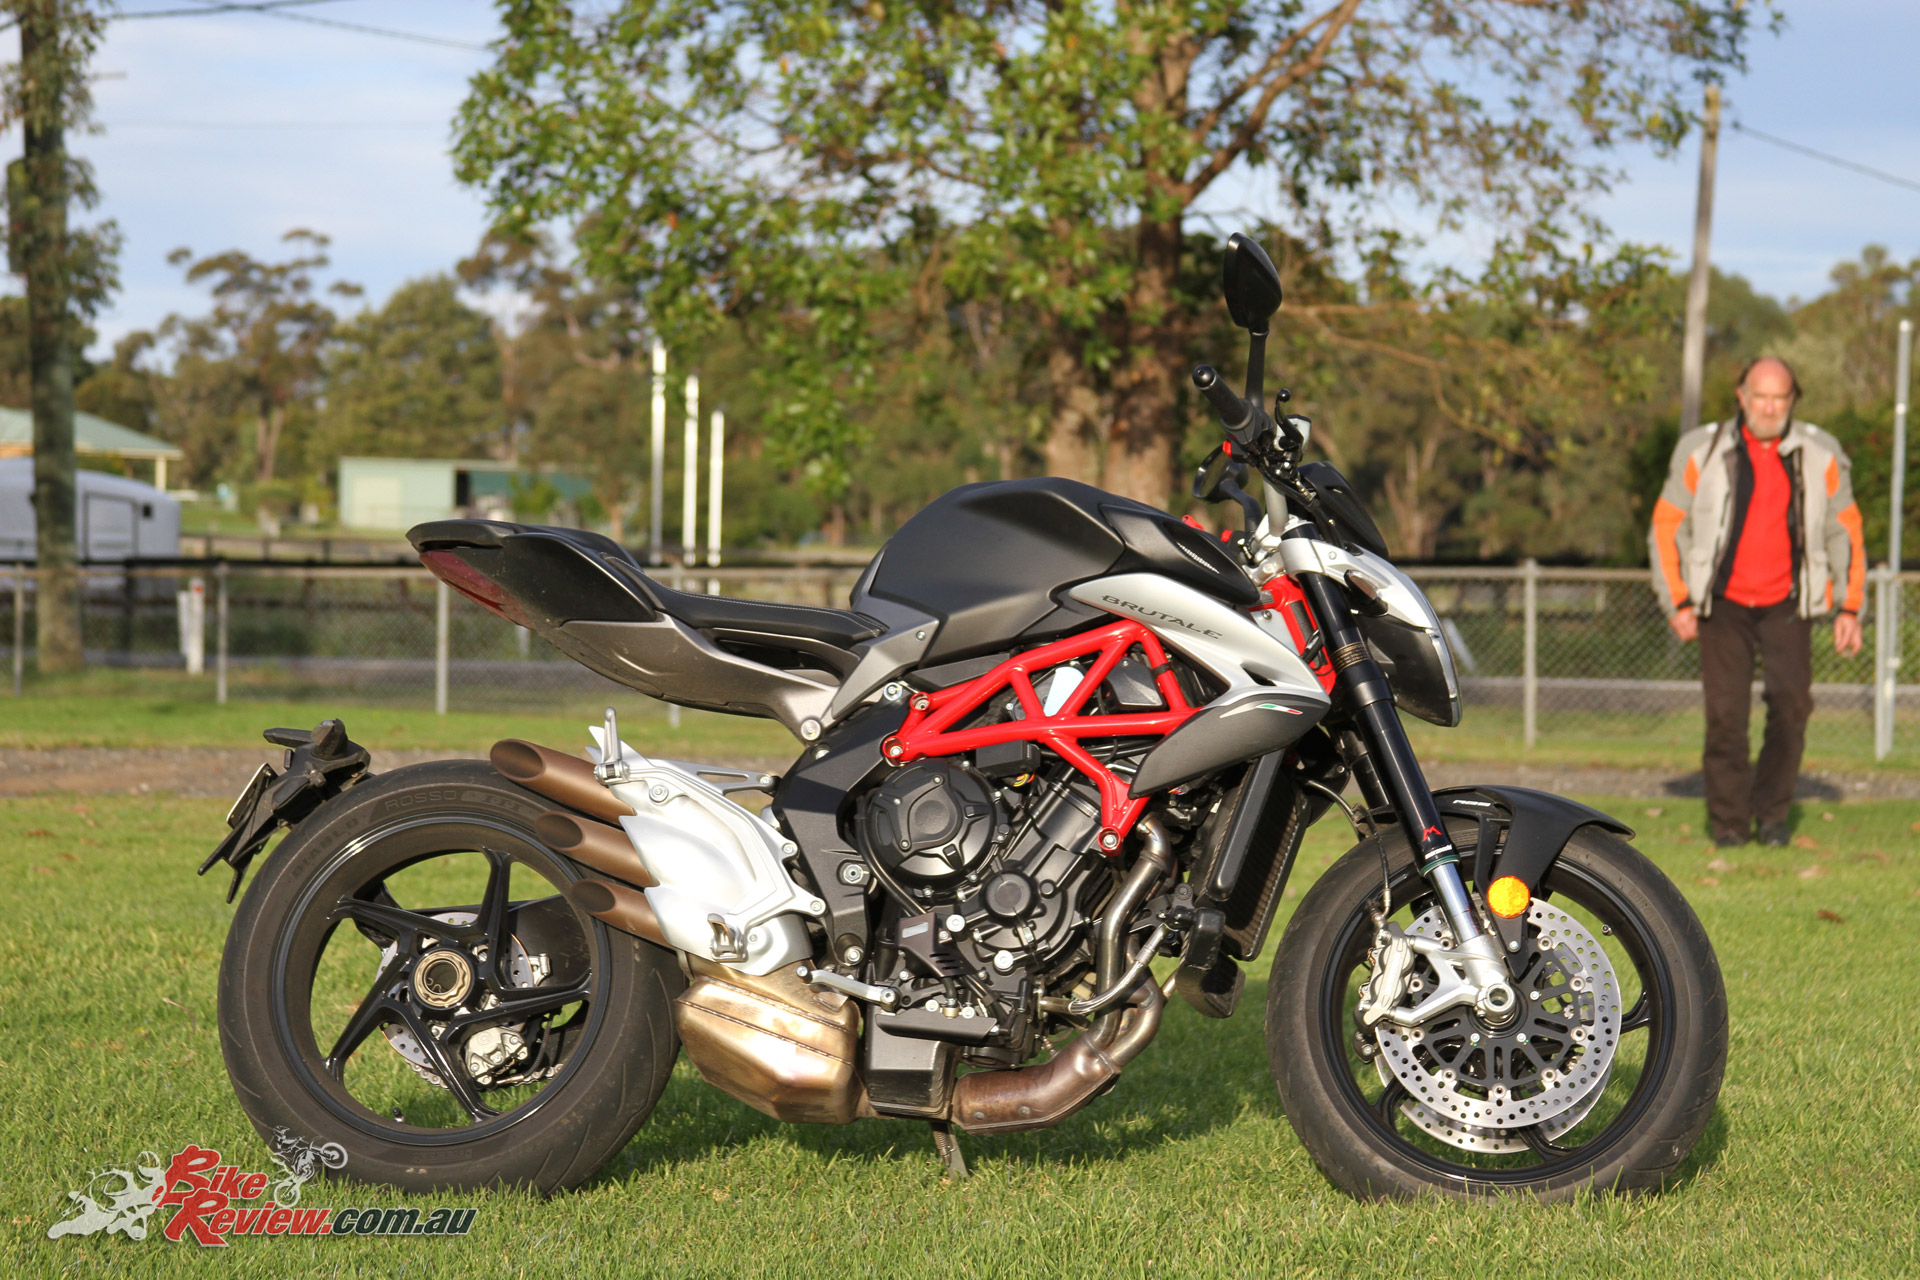 MV Agusta Brutale 800 Second OpinionMV Agusta Brutale 800 Second Opinion